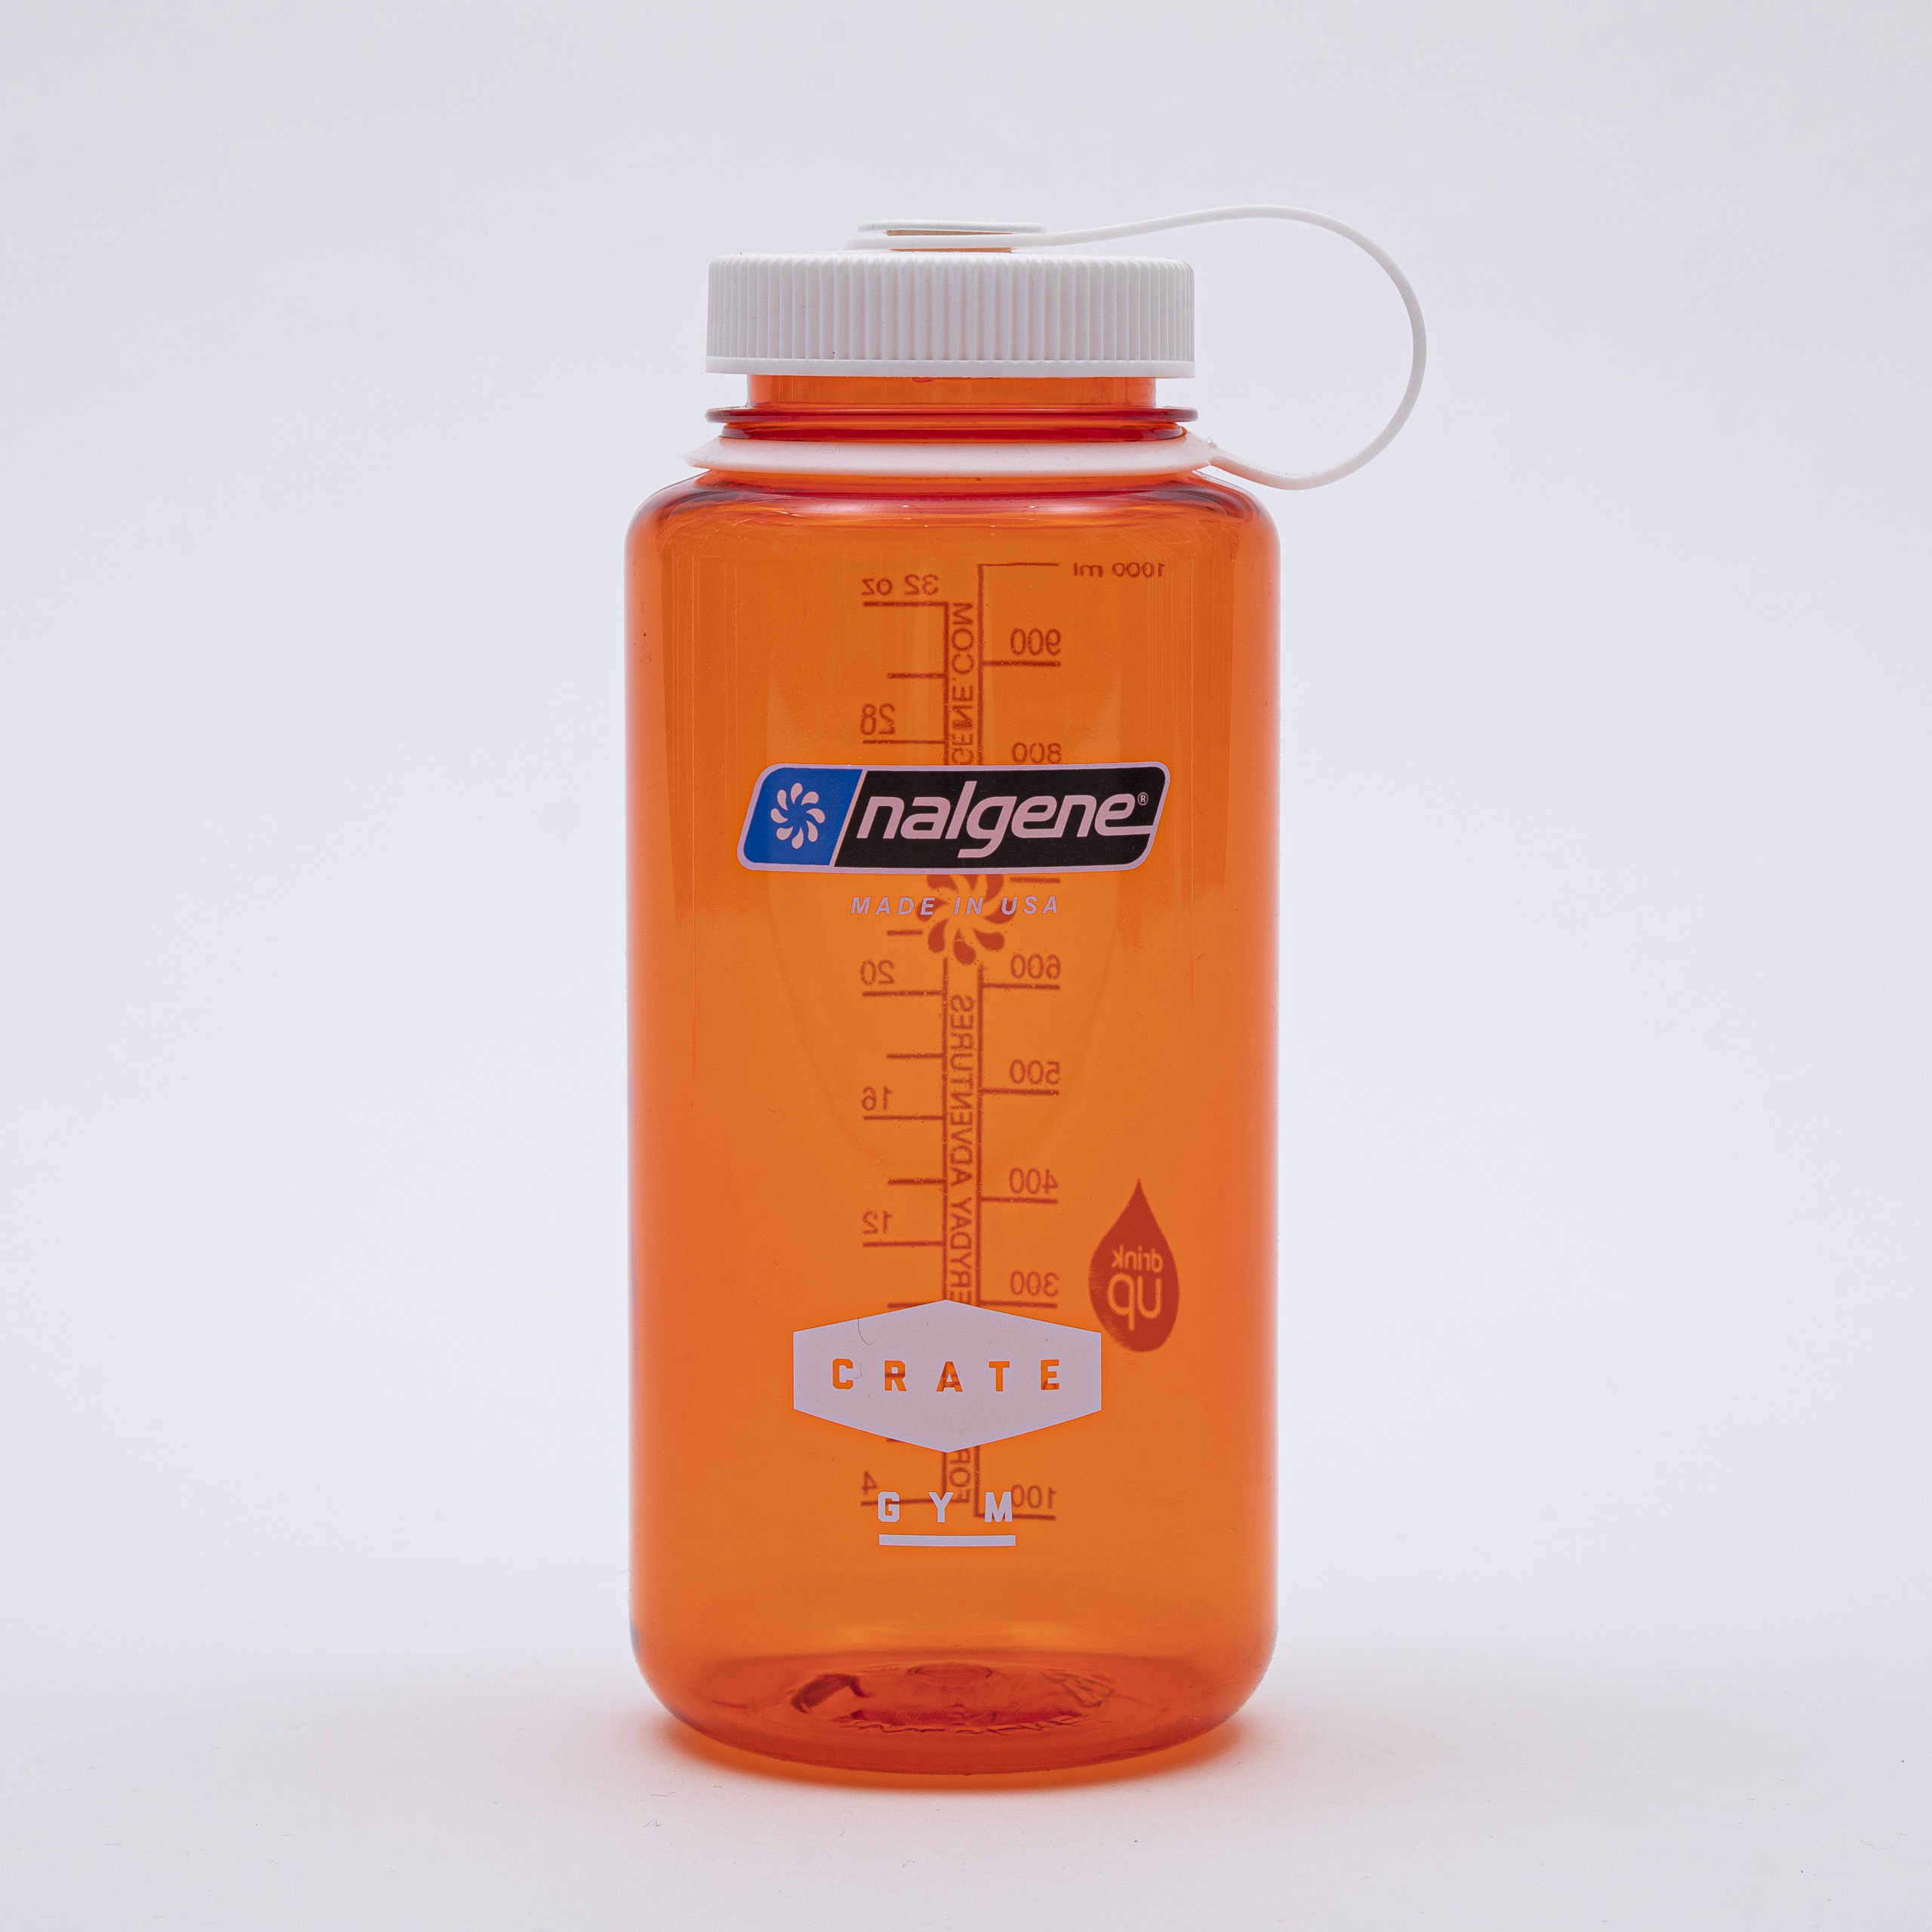 CRATE GYM Original Bottle nalgene